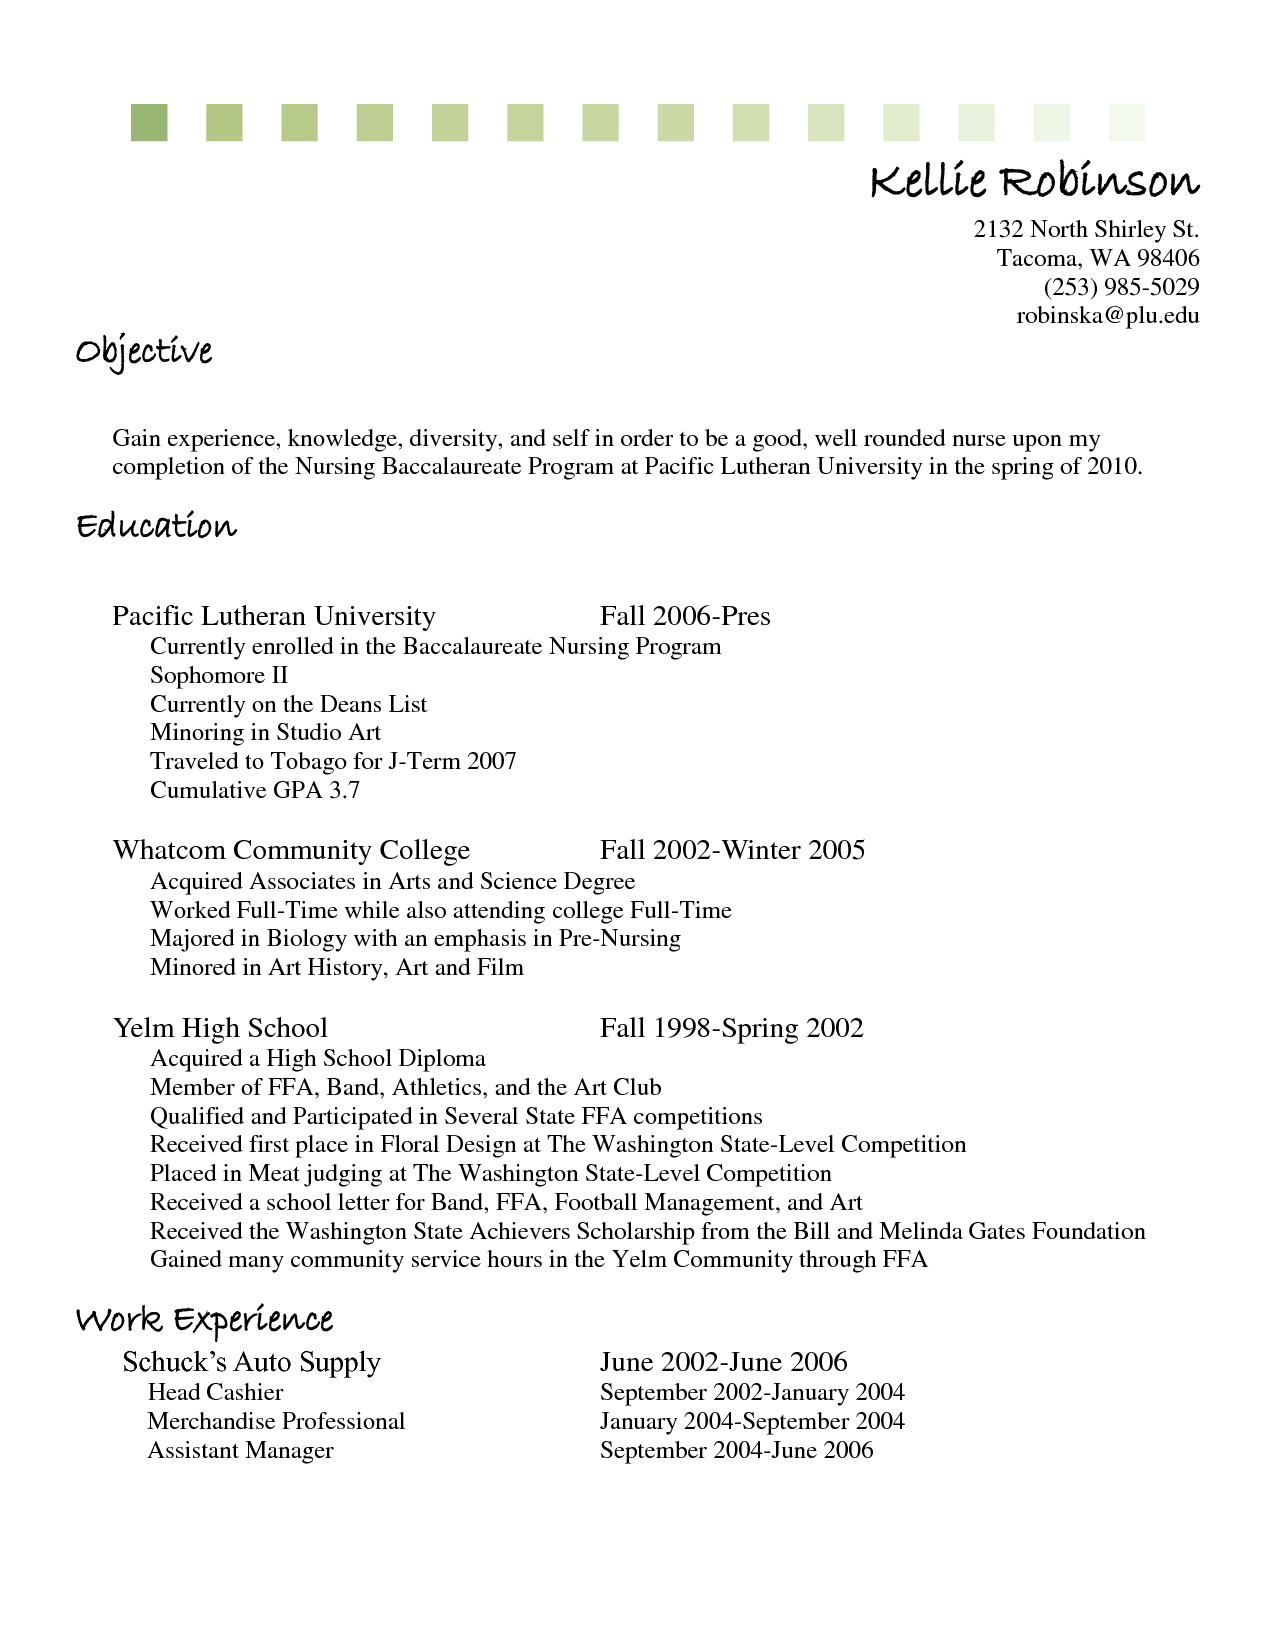 Example Resume Cashier Job Sample Cover Retail Jobs Letter  Resume For Cashier